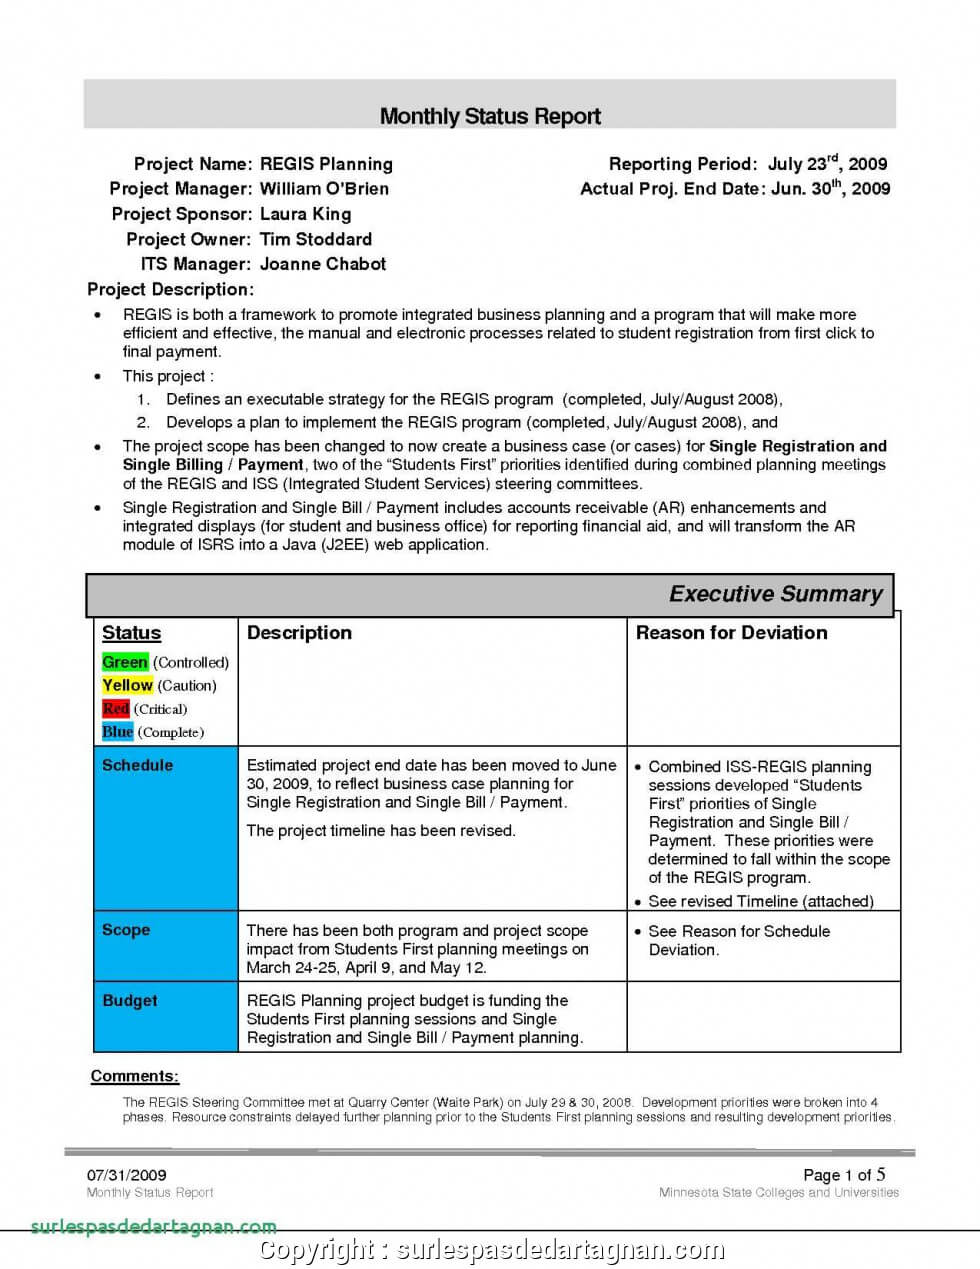 Executive Sales Manager Report Example Monthly Report With Sales Manager Monthly Report Templates